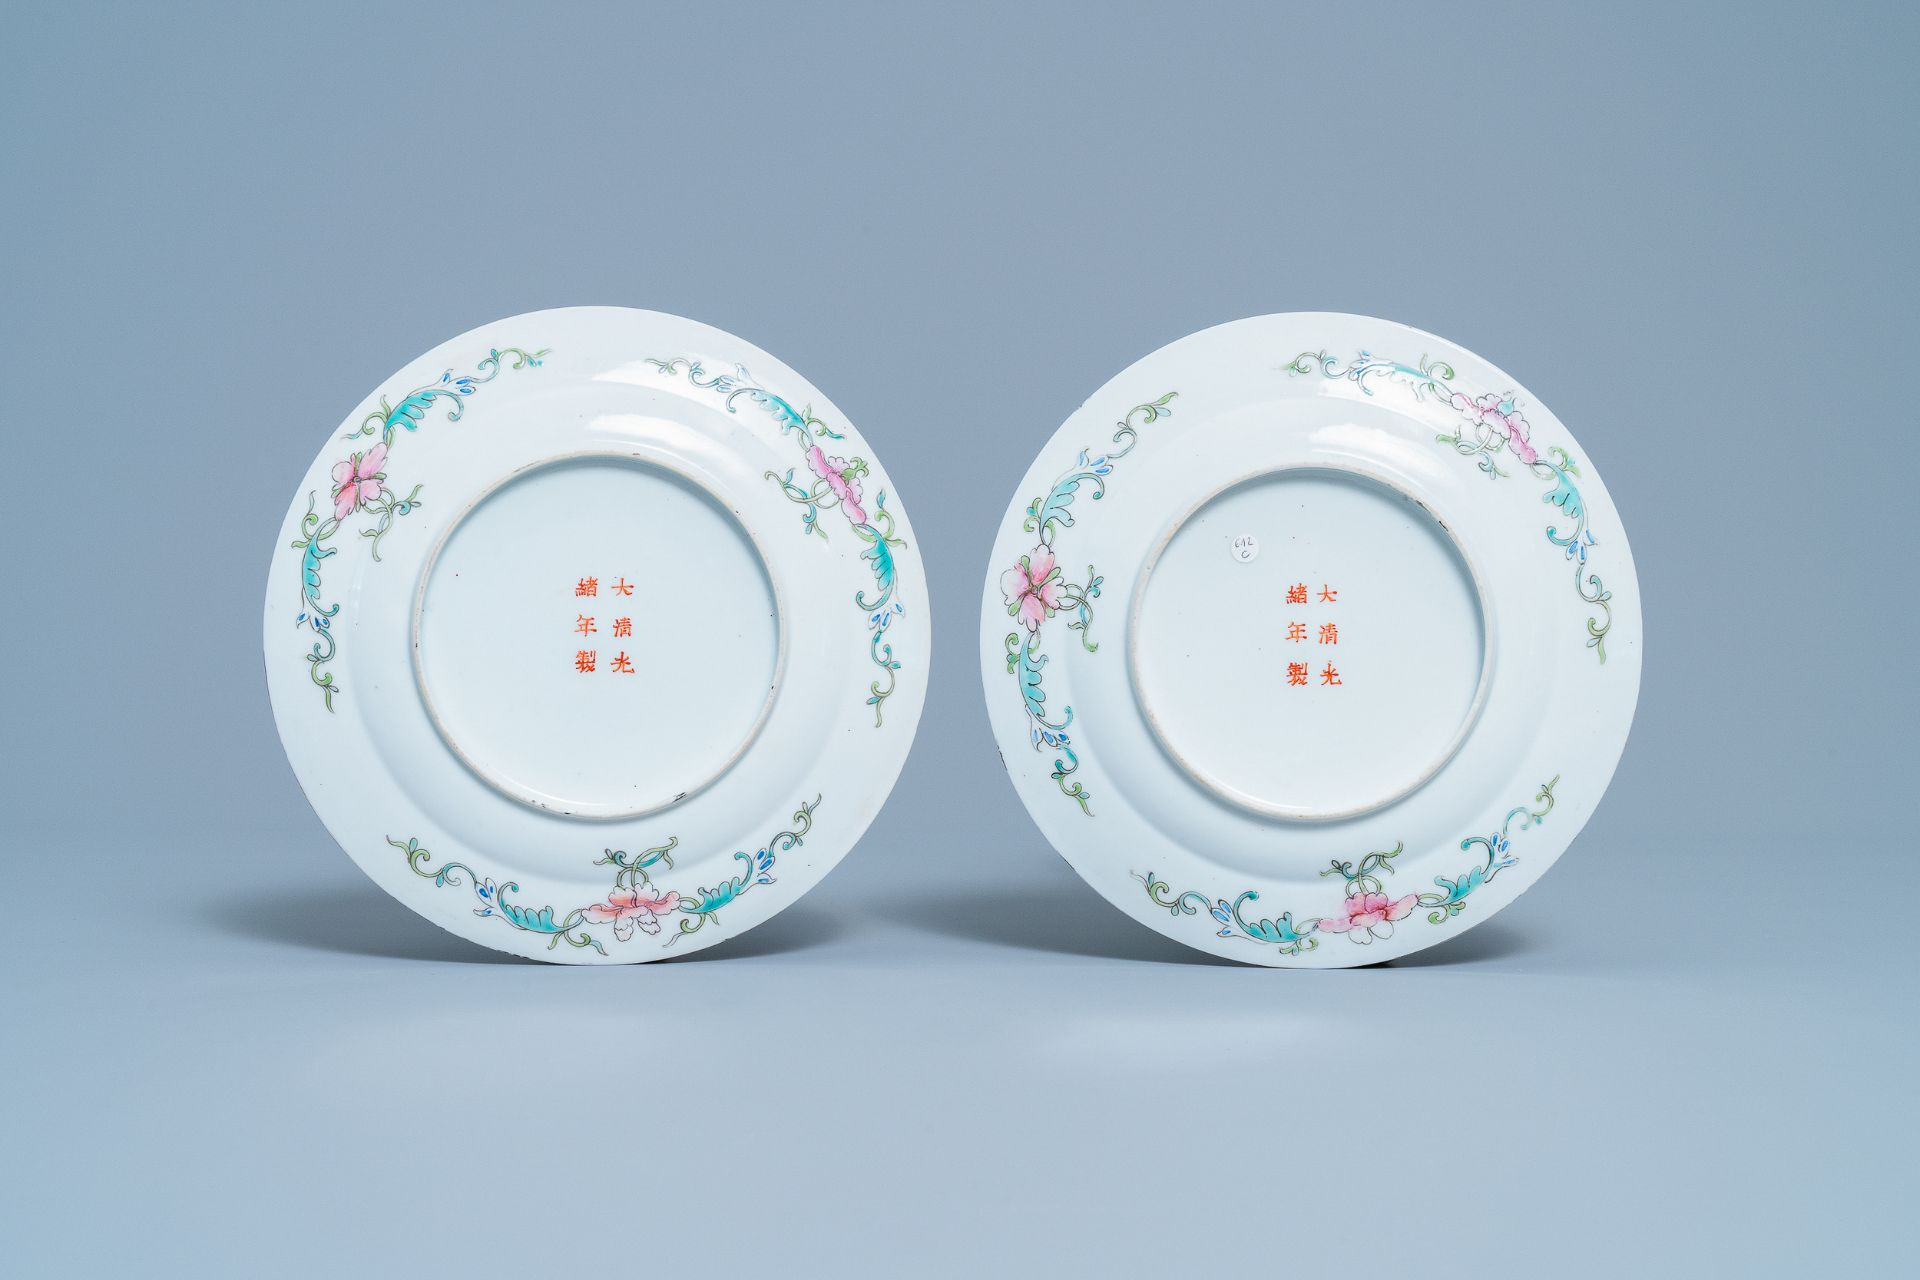 A pair of Chinese famille rose 'millefleurs' plates and a blue ground plate, 19th/20th C. - Image 3 of 5